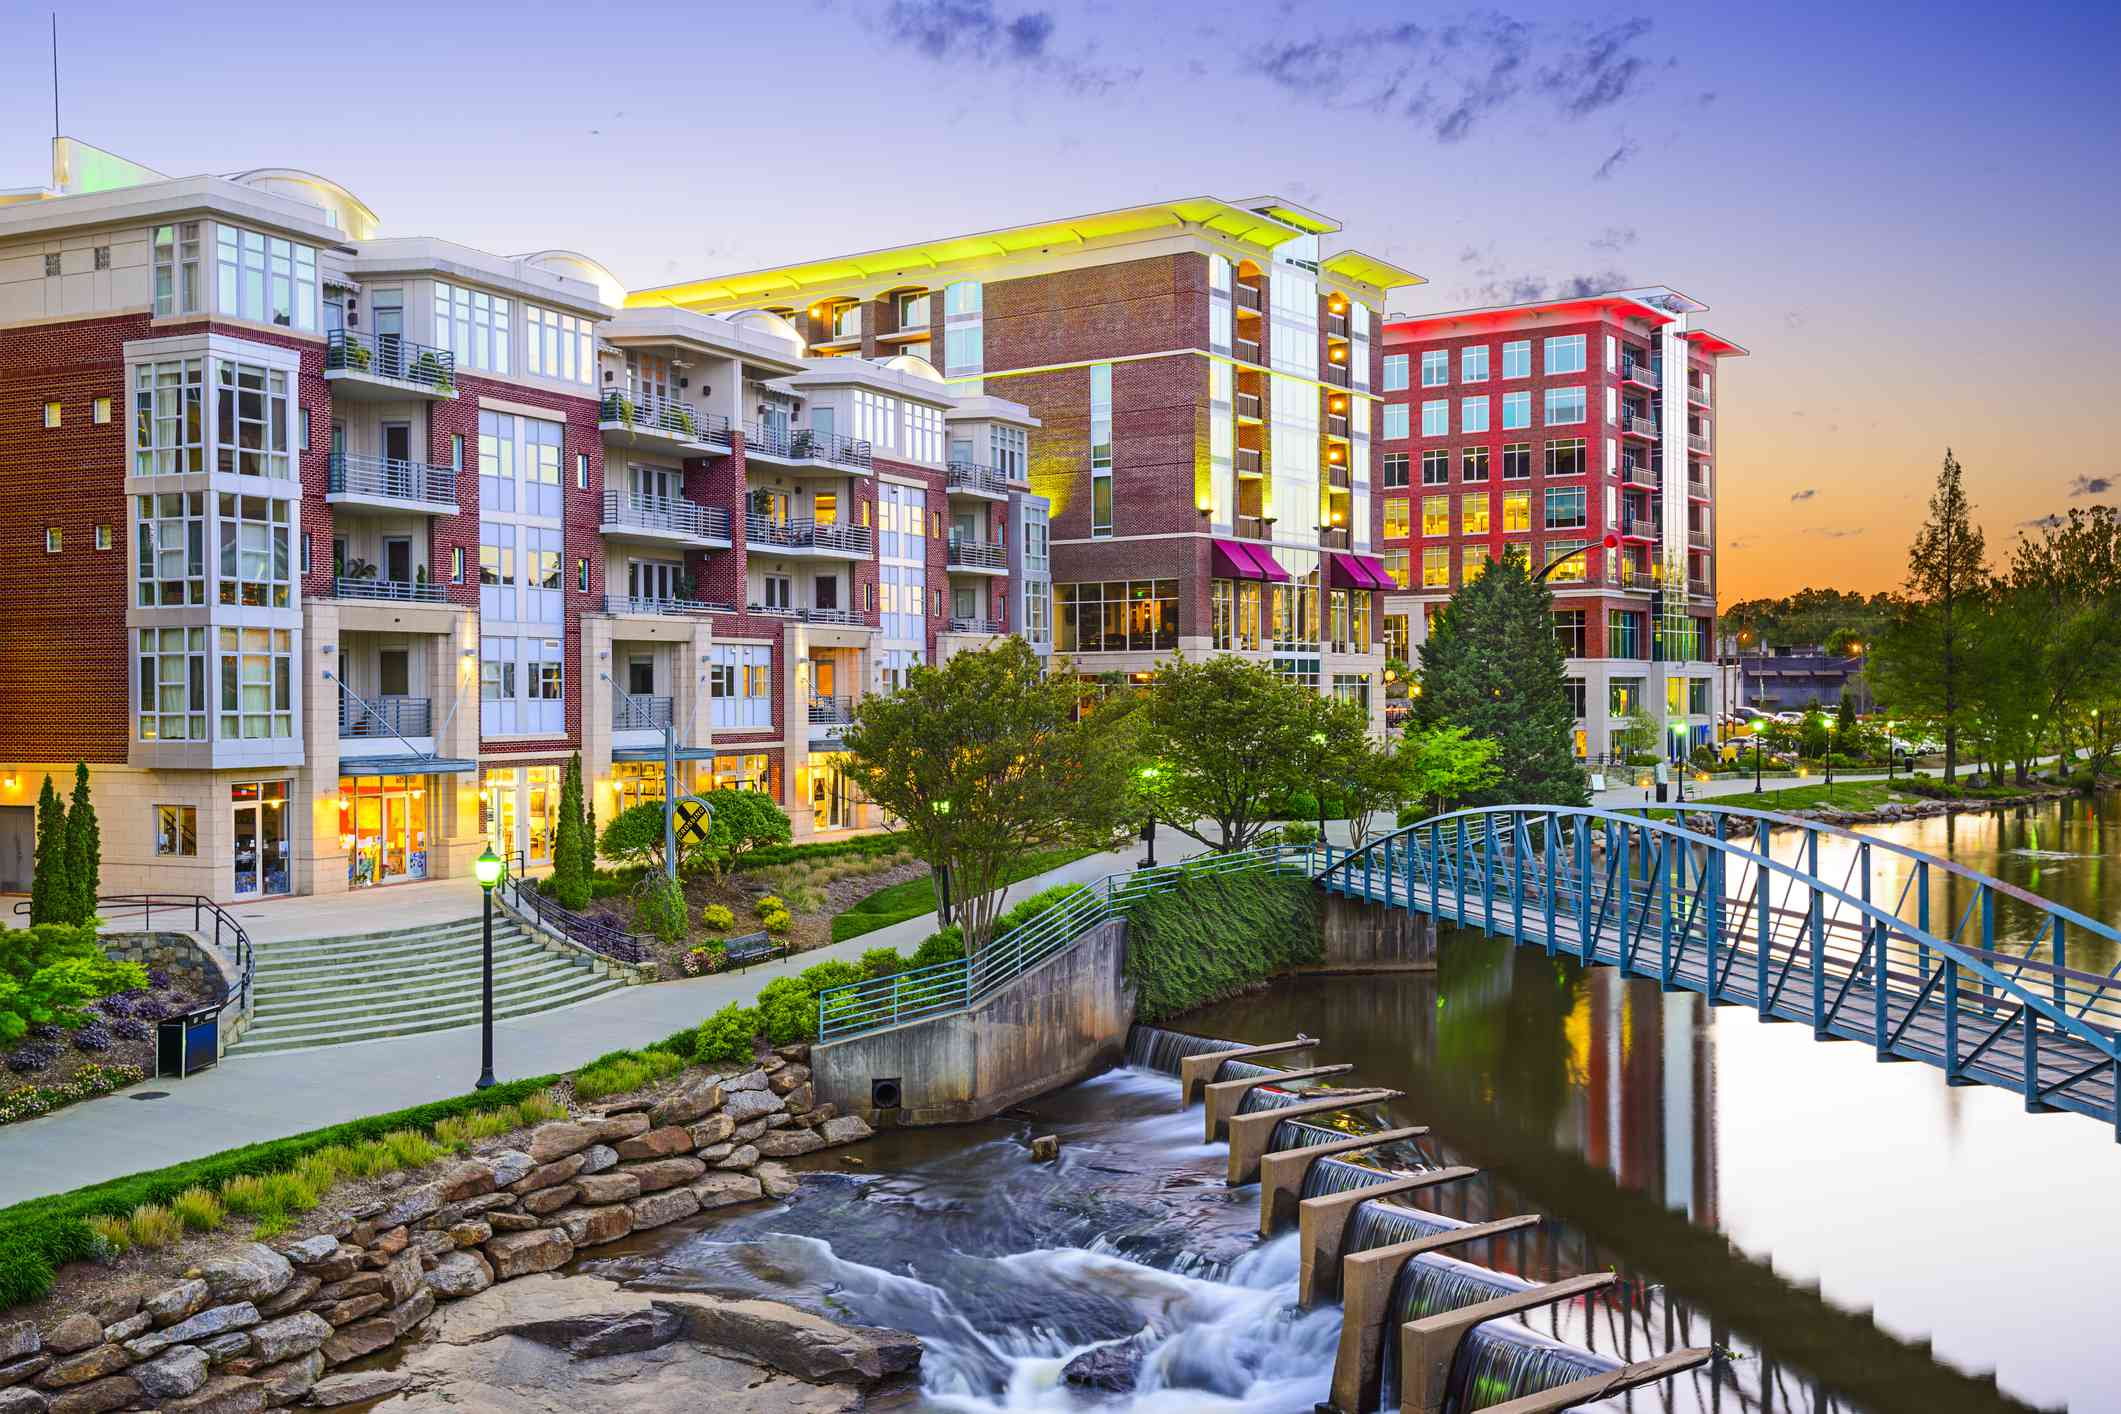 buildings and a stream in downtown Greenville, South Carolina